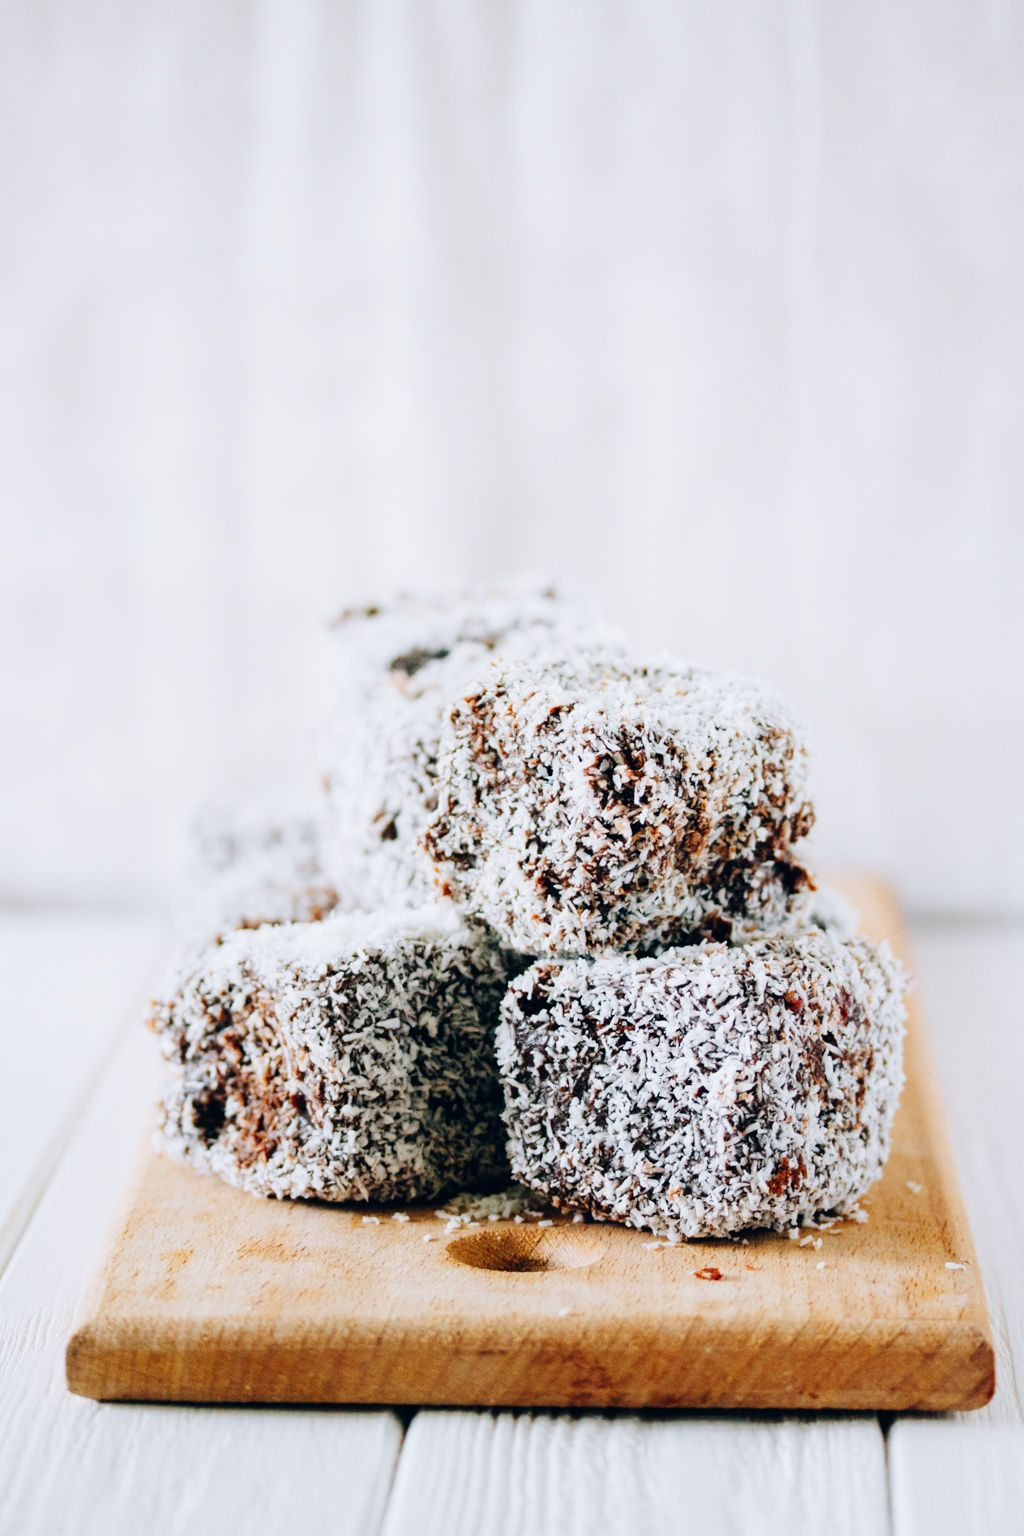 ... mocha lamingtons with berry preserves ...